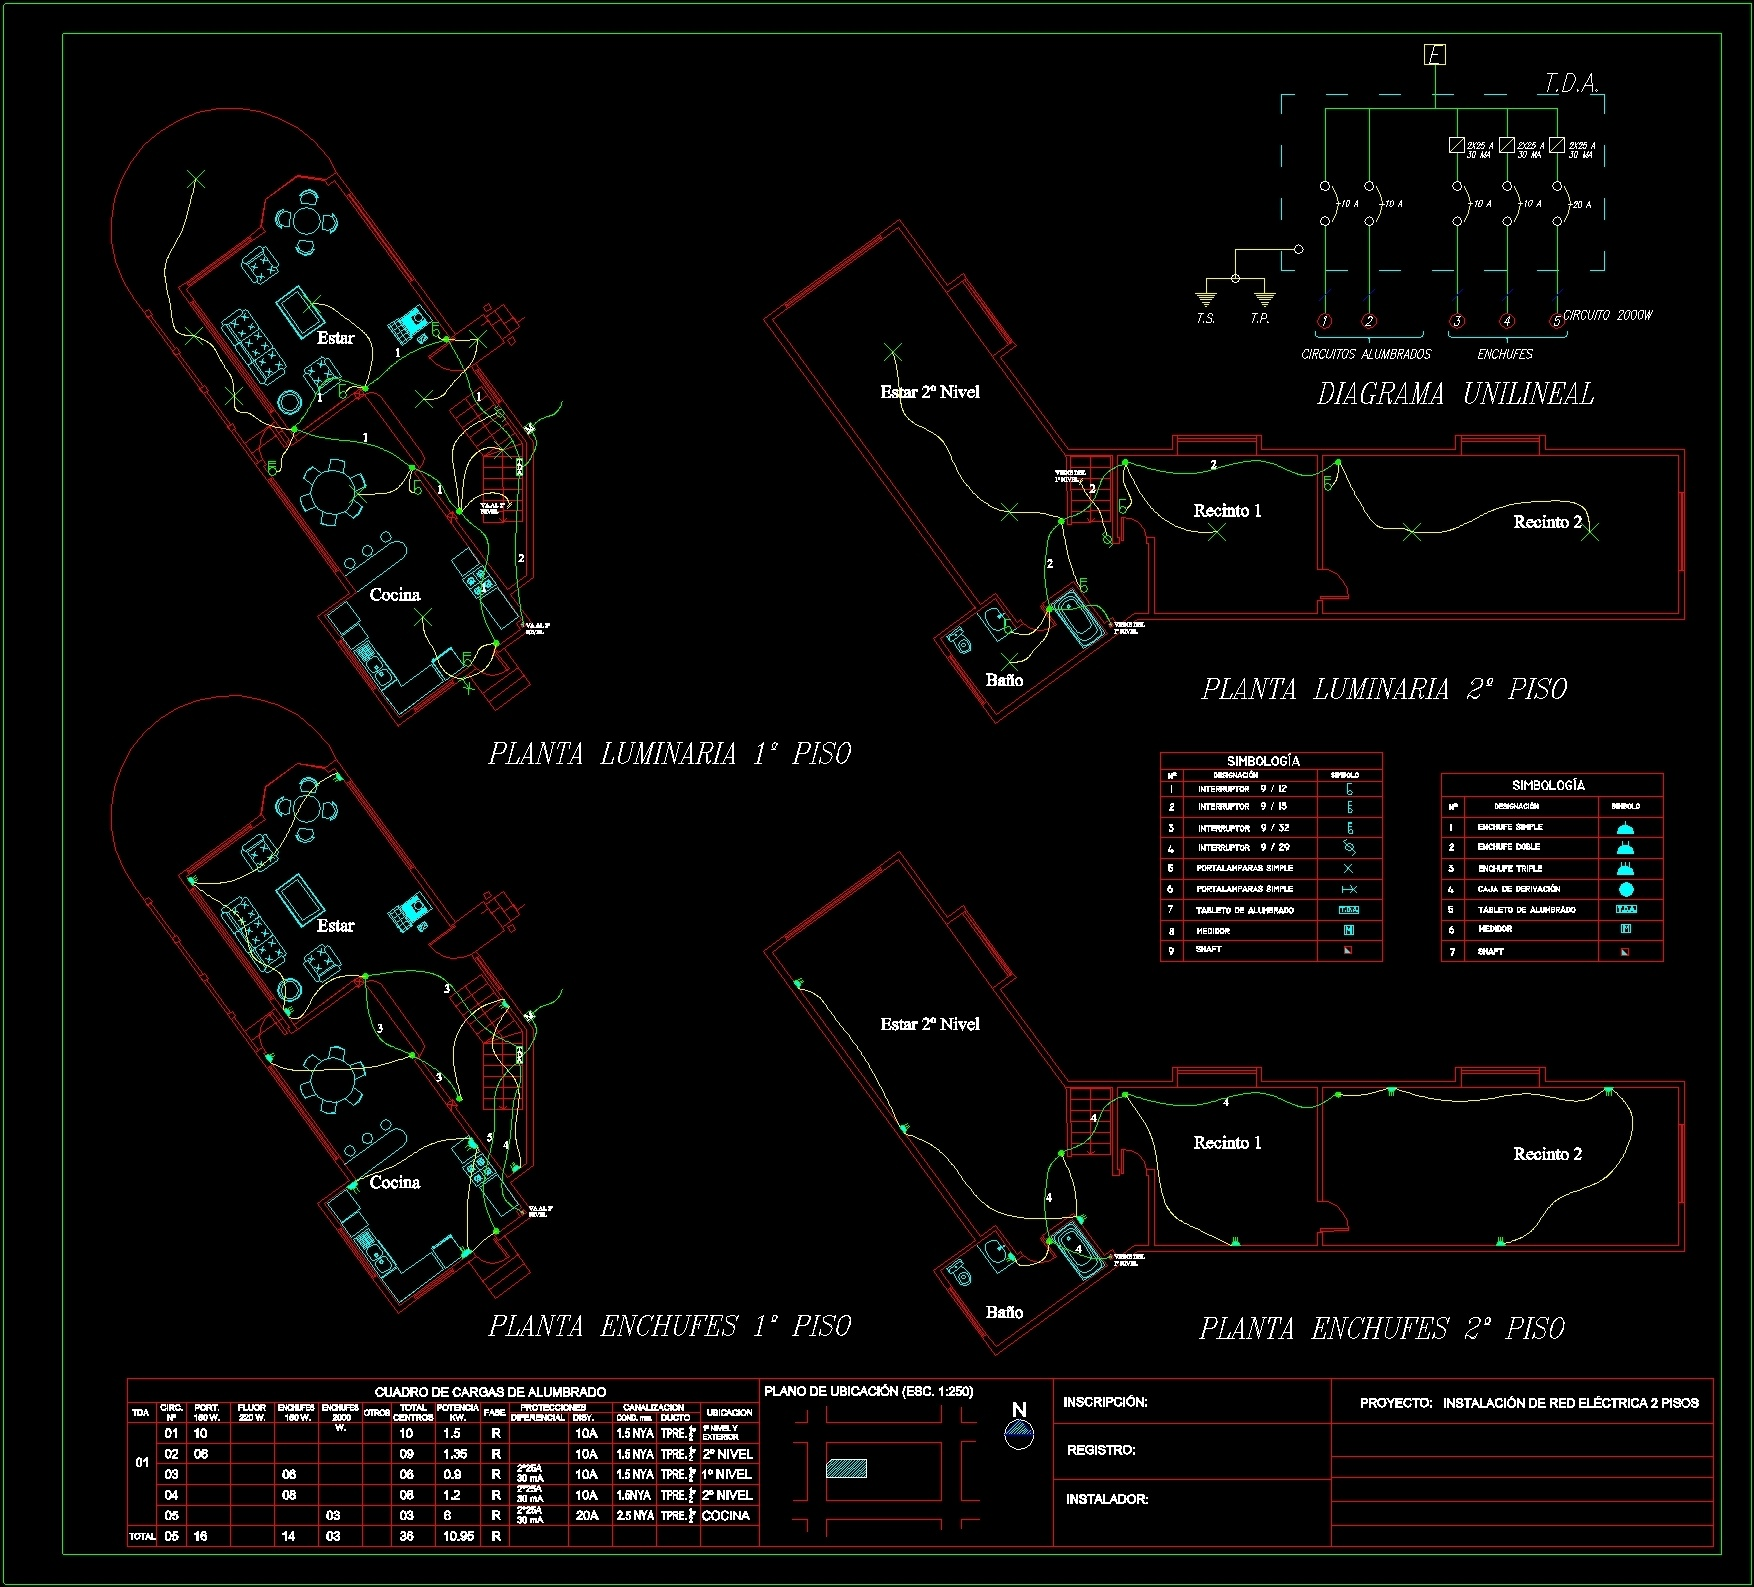 Circuito Unilineal : Wiring plan lights and outlets dwg plan for autocad u2022 designs cad